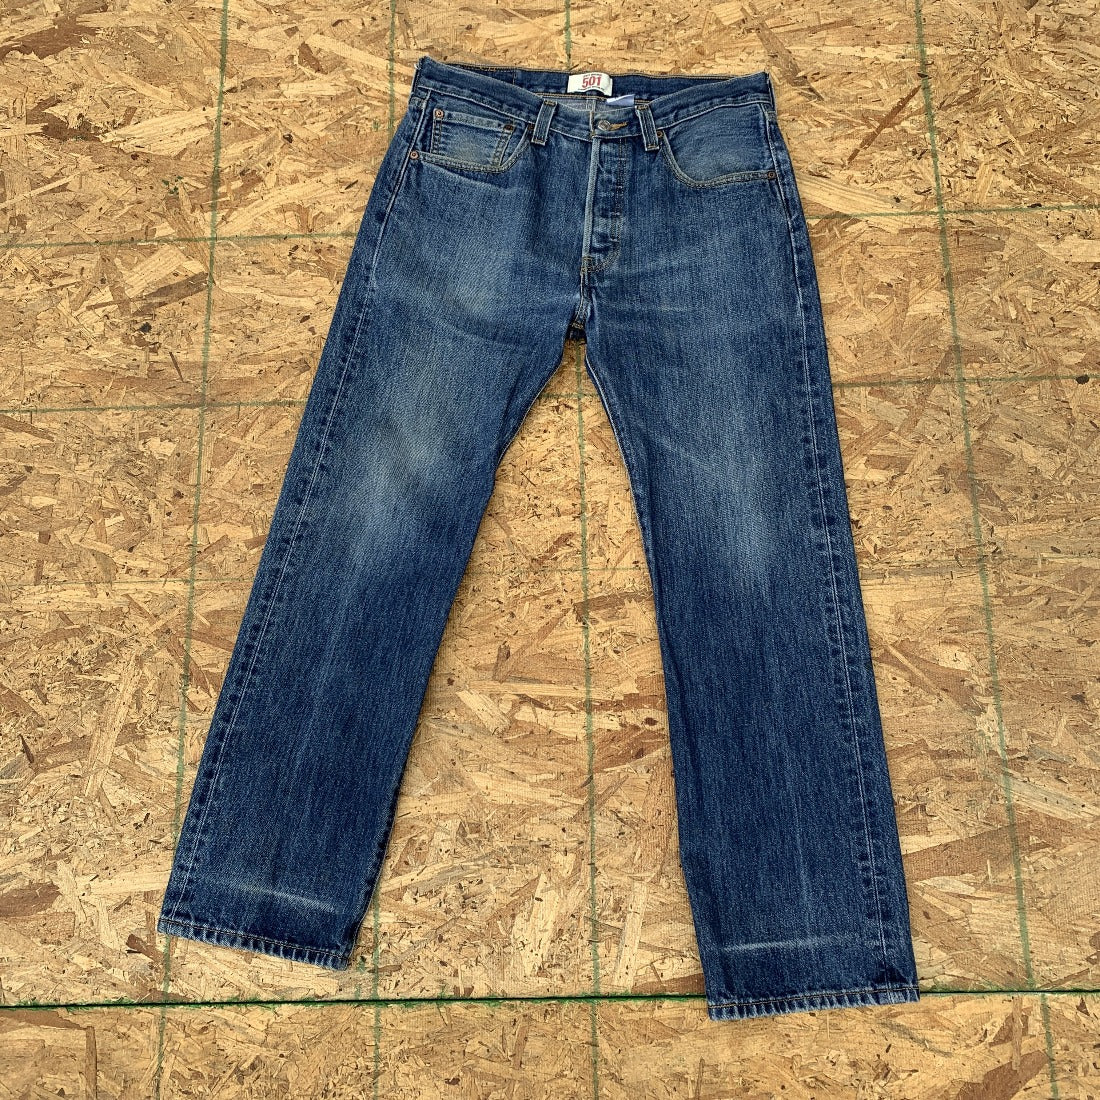 90s Levi's 501 Vintage Wash Pants Denim Jeans | 32 x 29